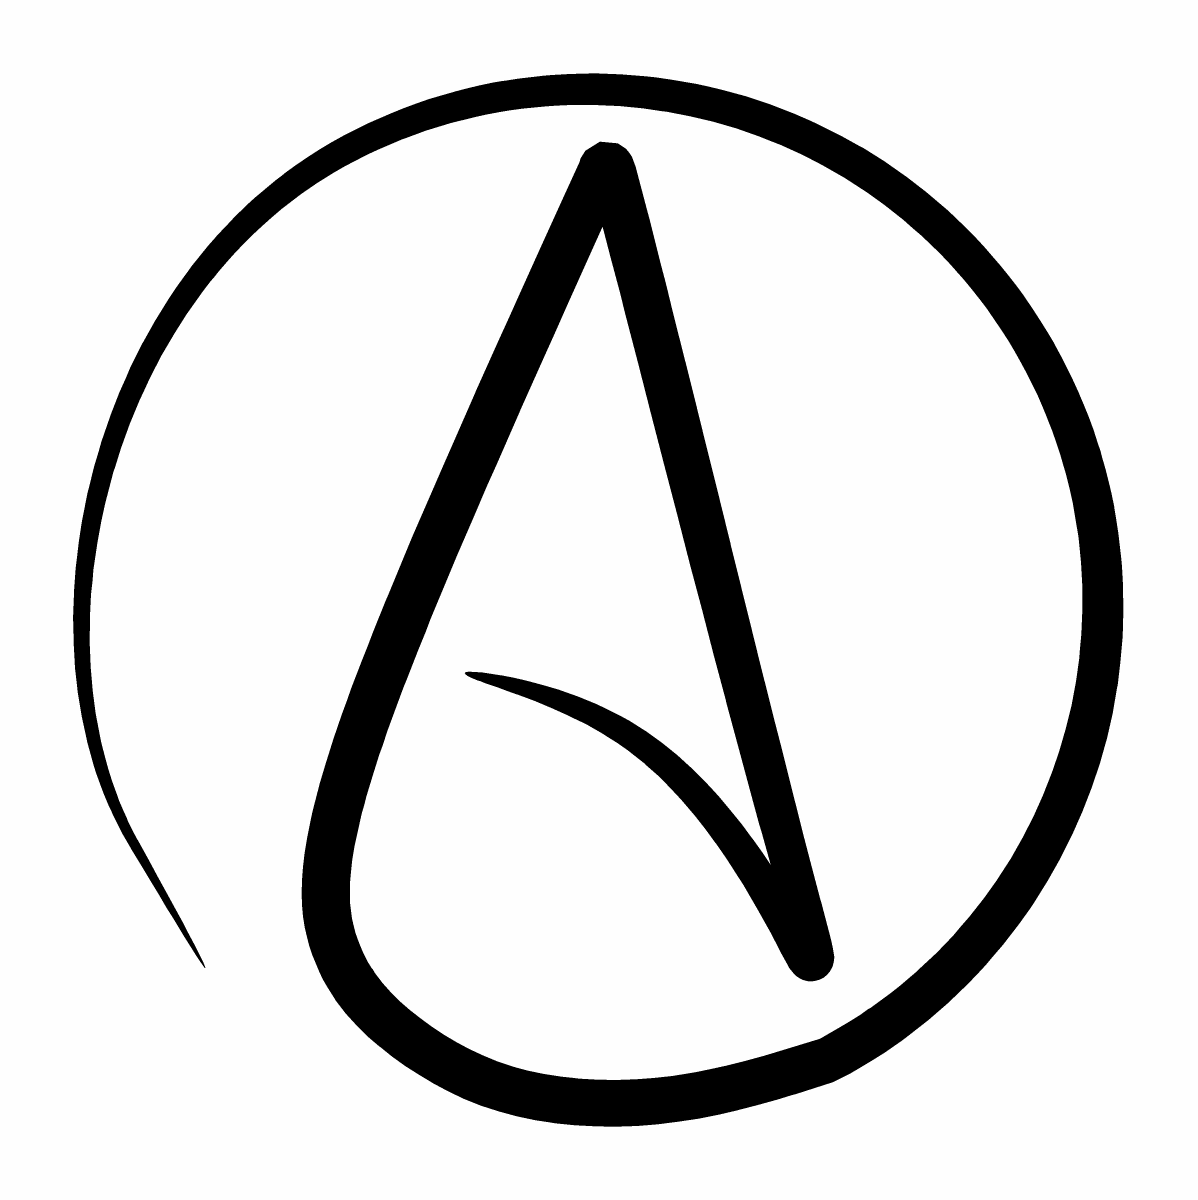 Some Facts About Atheism Misc Pinterest Symbols Atheism And